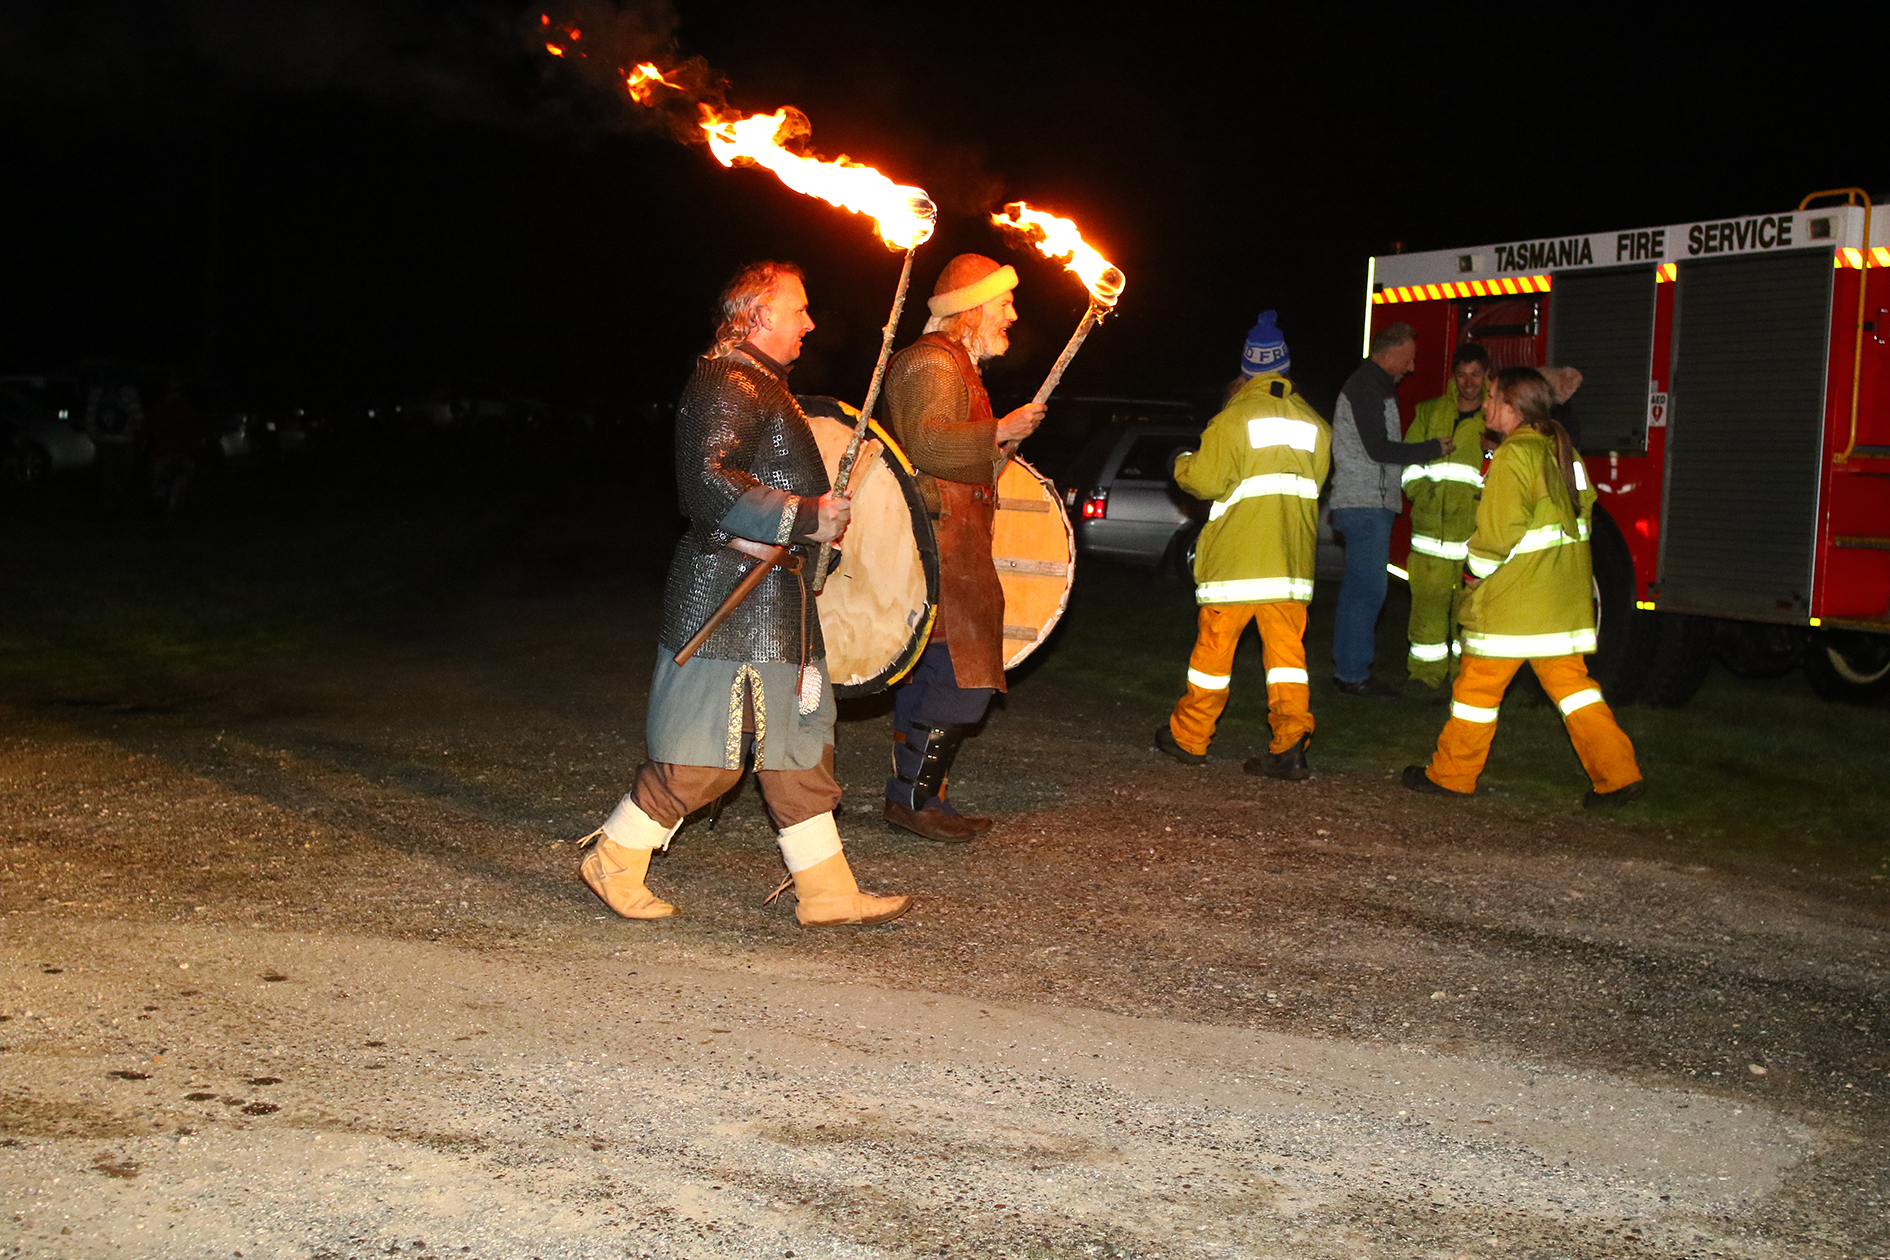 It pays to have the Deloraine Fire Service nearby when Vikings roam the land.  Photo by Mike Moores